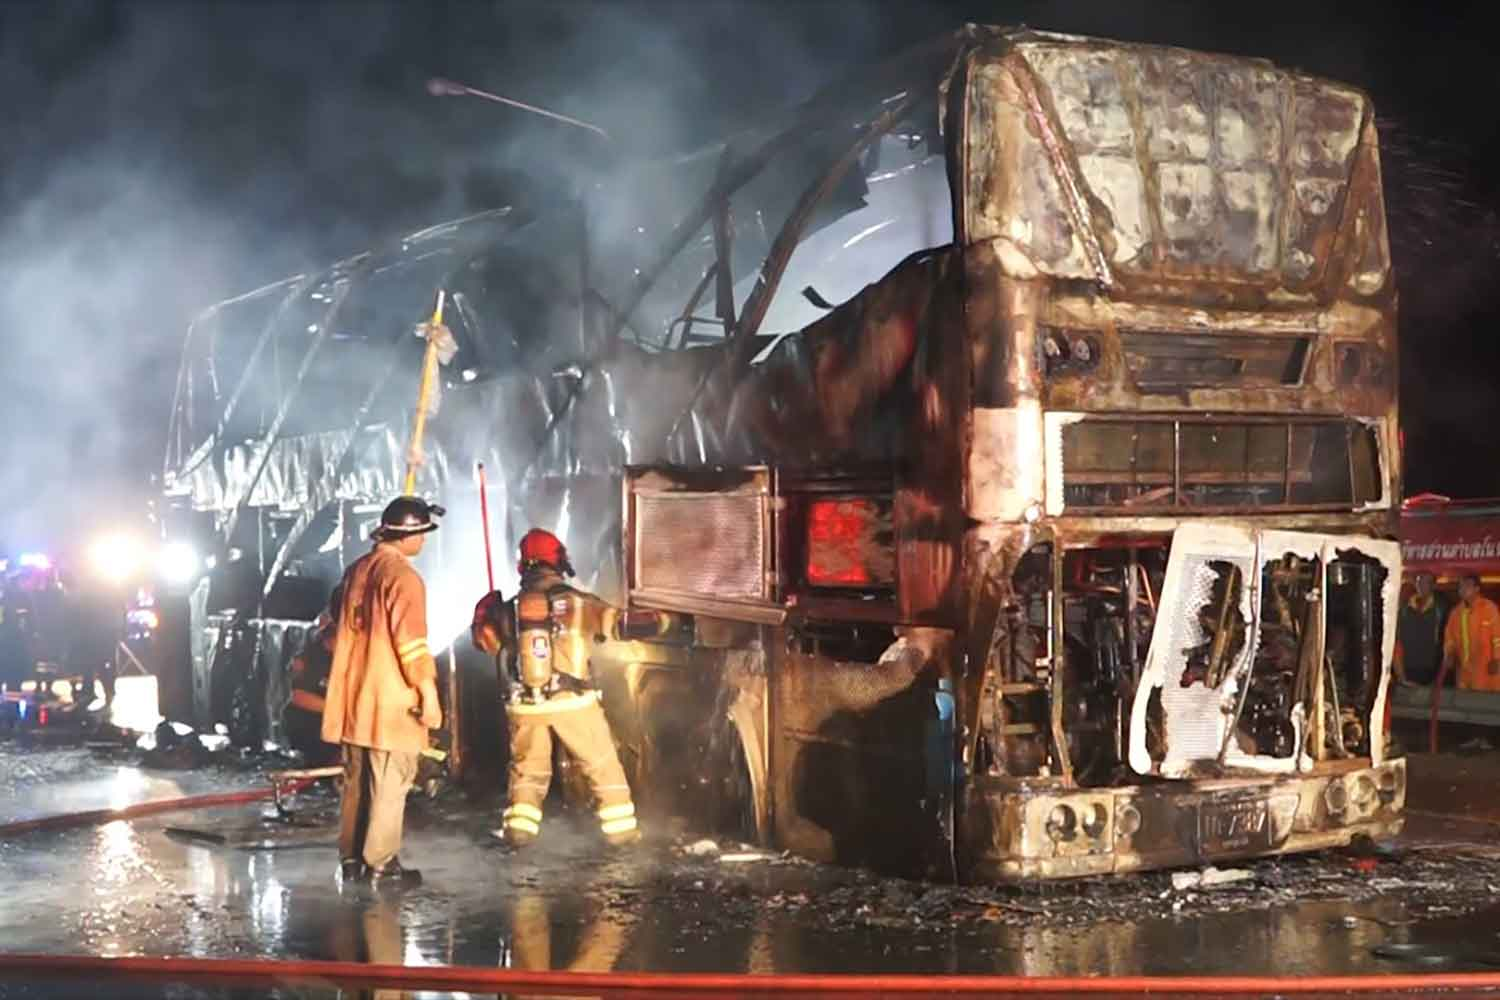 Firefighters are at the bus fire scene on the Mittraphap Highway in tambon Non Sombun of Ban Hat district, Khon Kaen, on Tuesday. (Photo: Chakrapan Natanri)